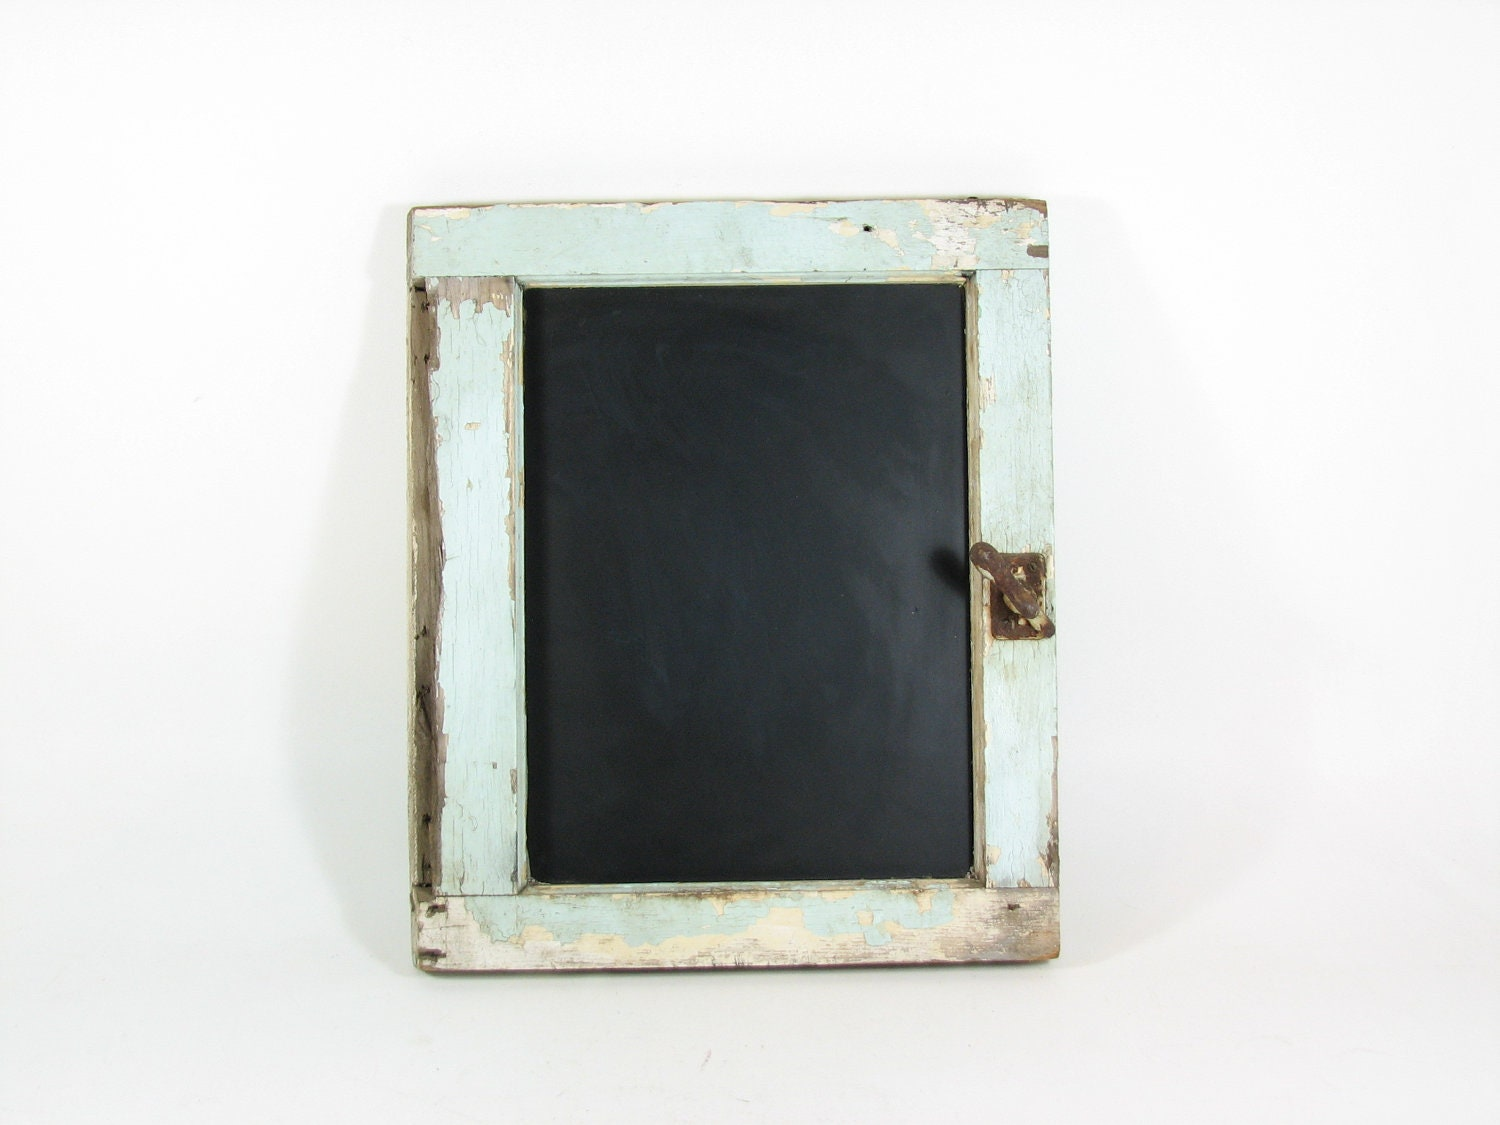 Chalkboard From Repurposed Vintage Cabinet Door By Bridgewoodplace